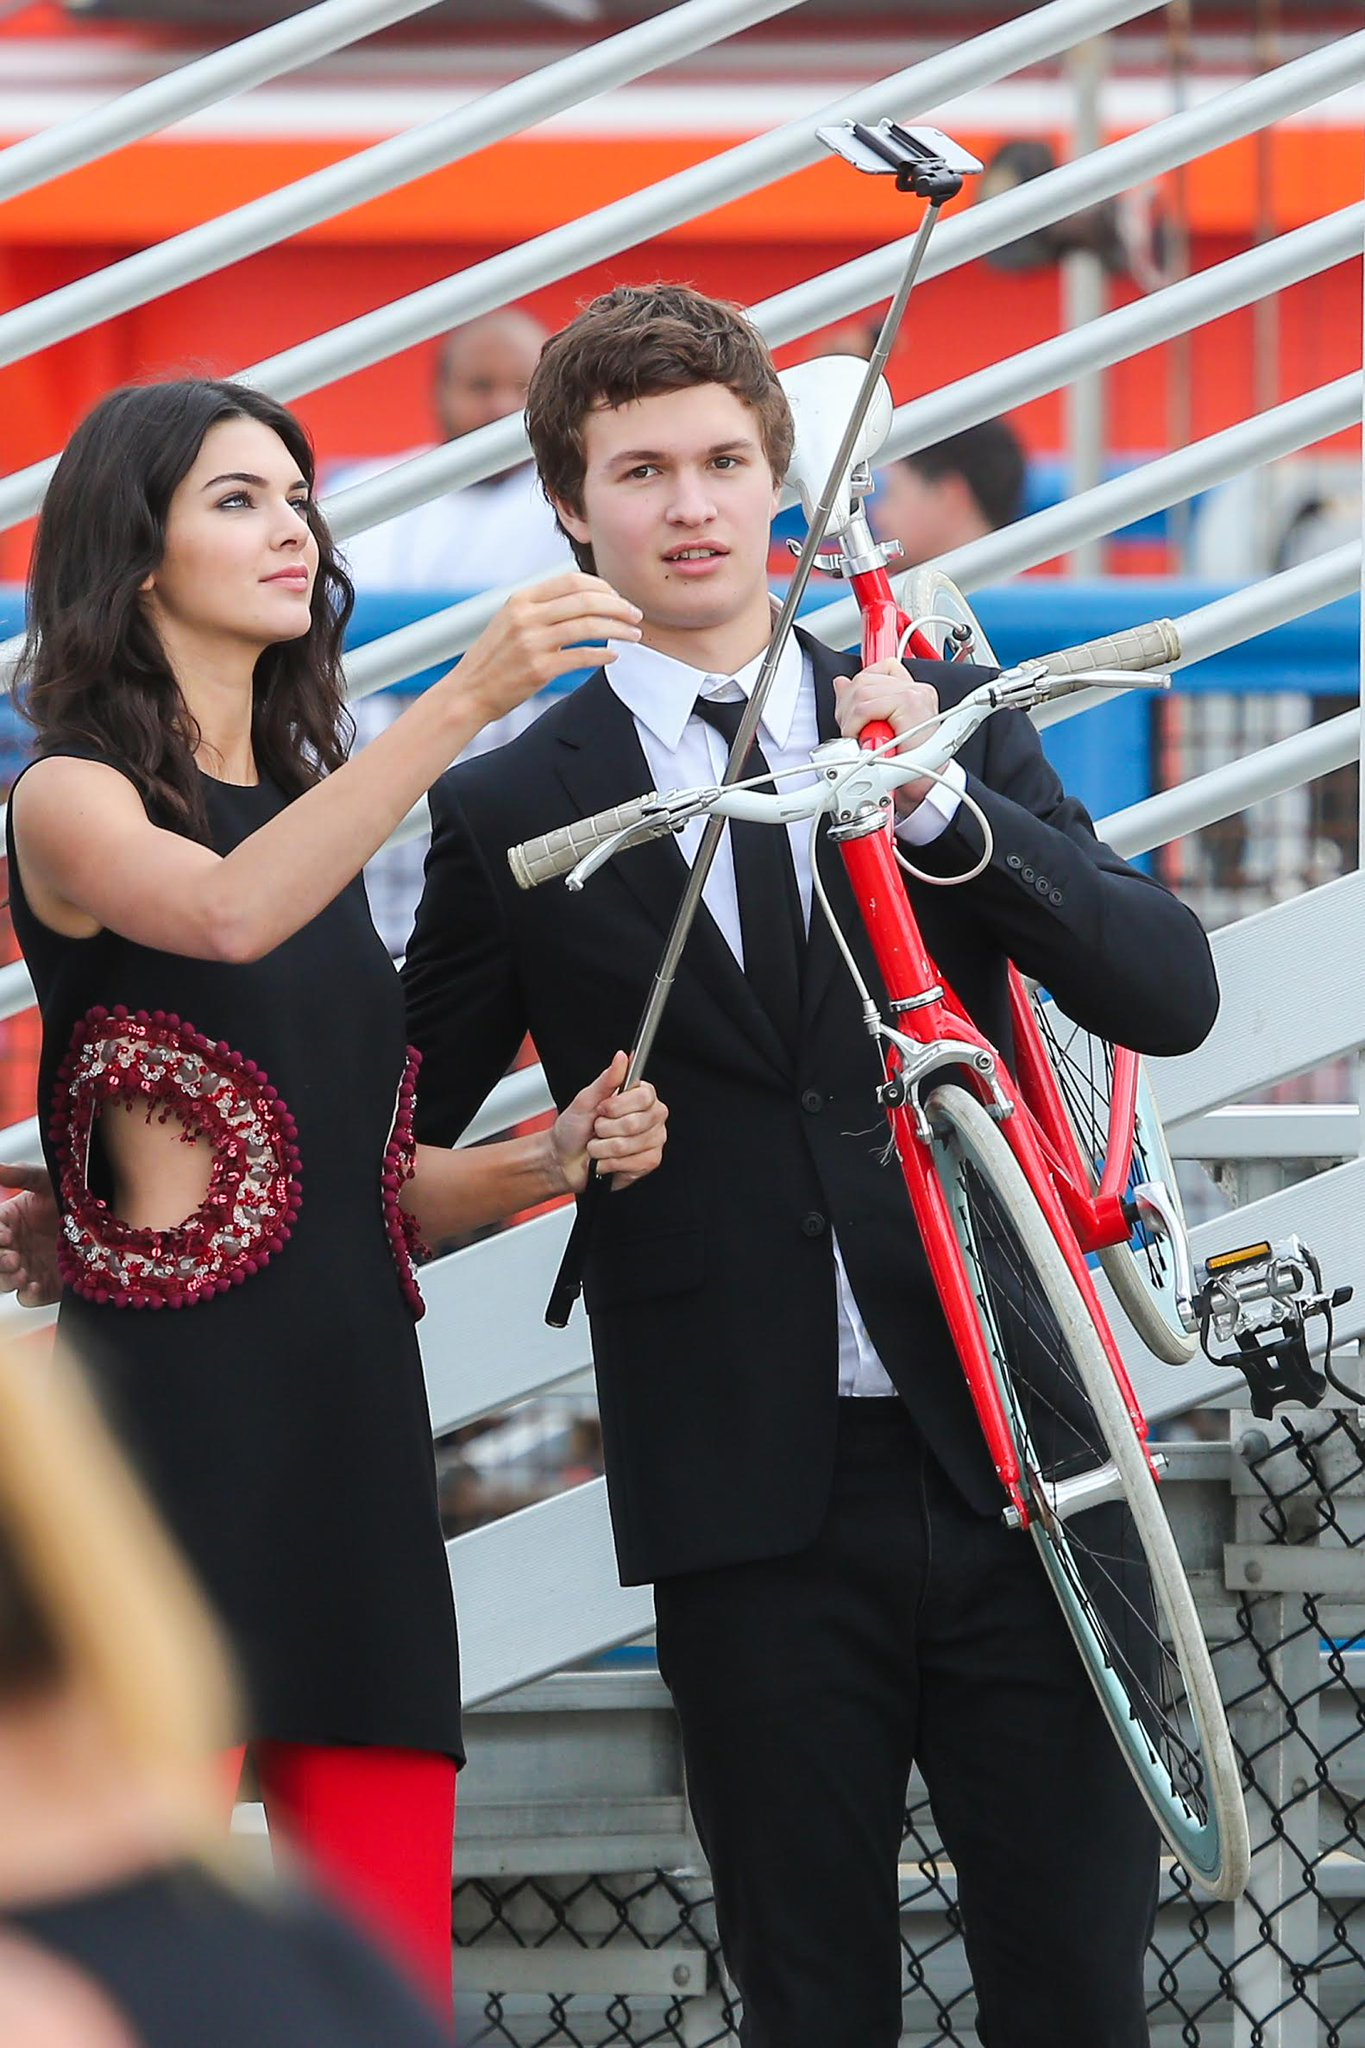 Kendall Jenner Wears Revealing Cut-Out Top, Parties with Ansel Elgort in Photo Shoot http://t.co/1HJkoCpMfg http://t.co/vwvvfUNl2F